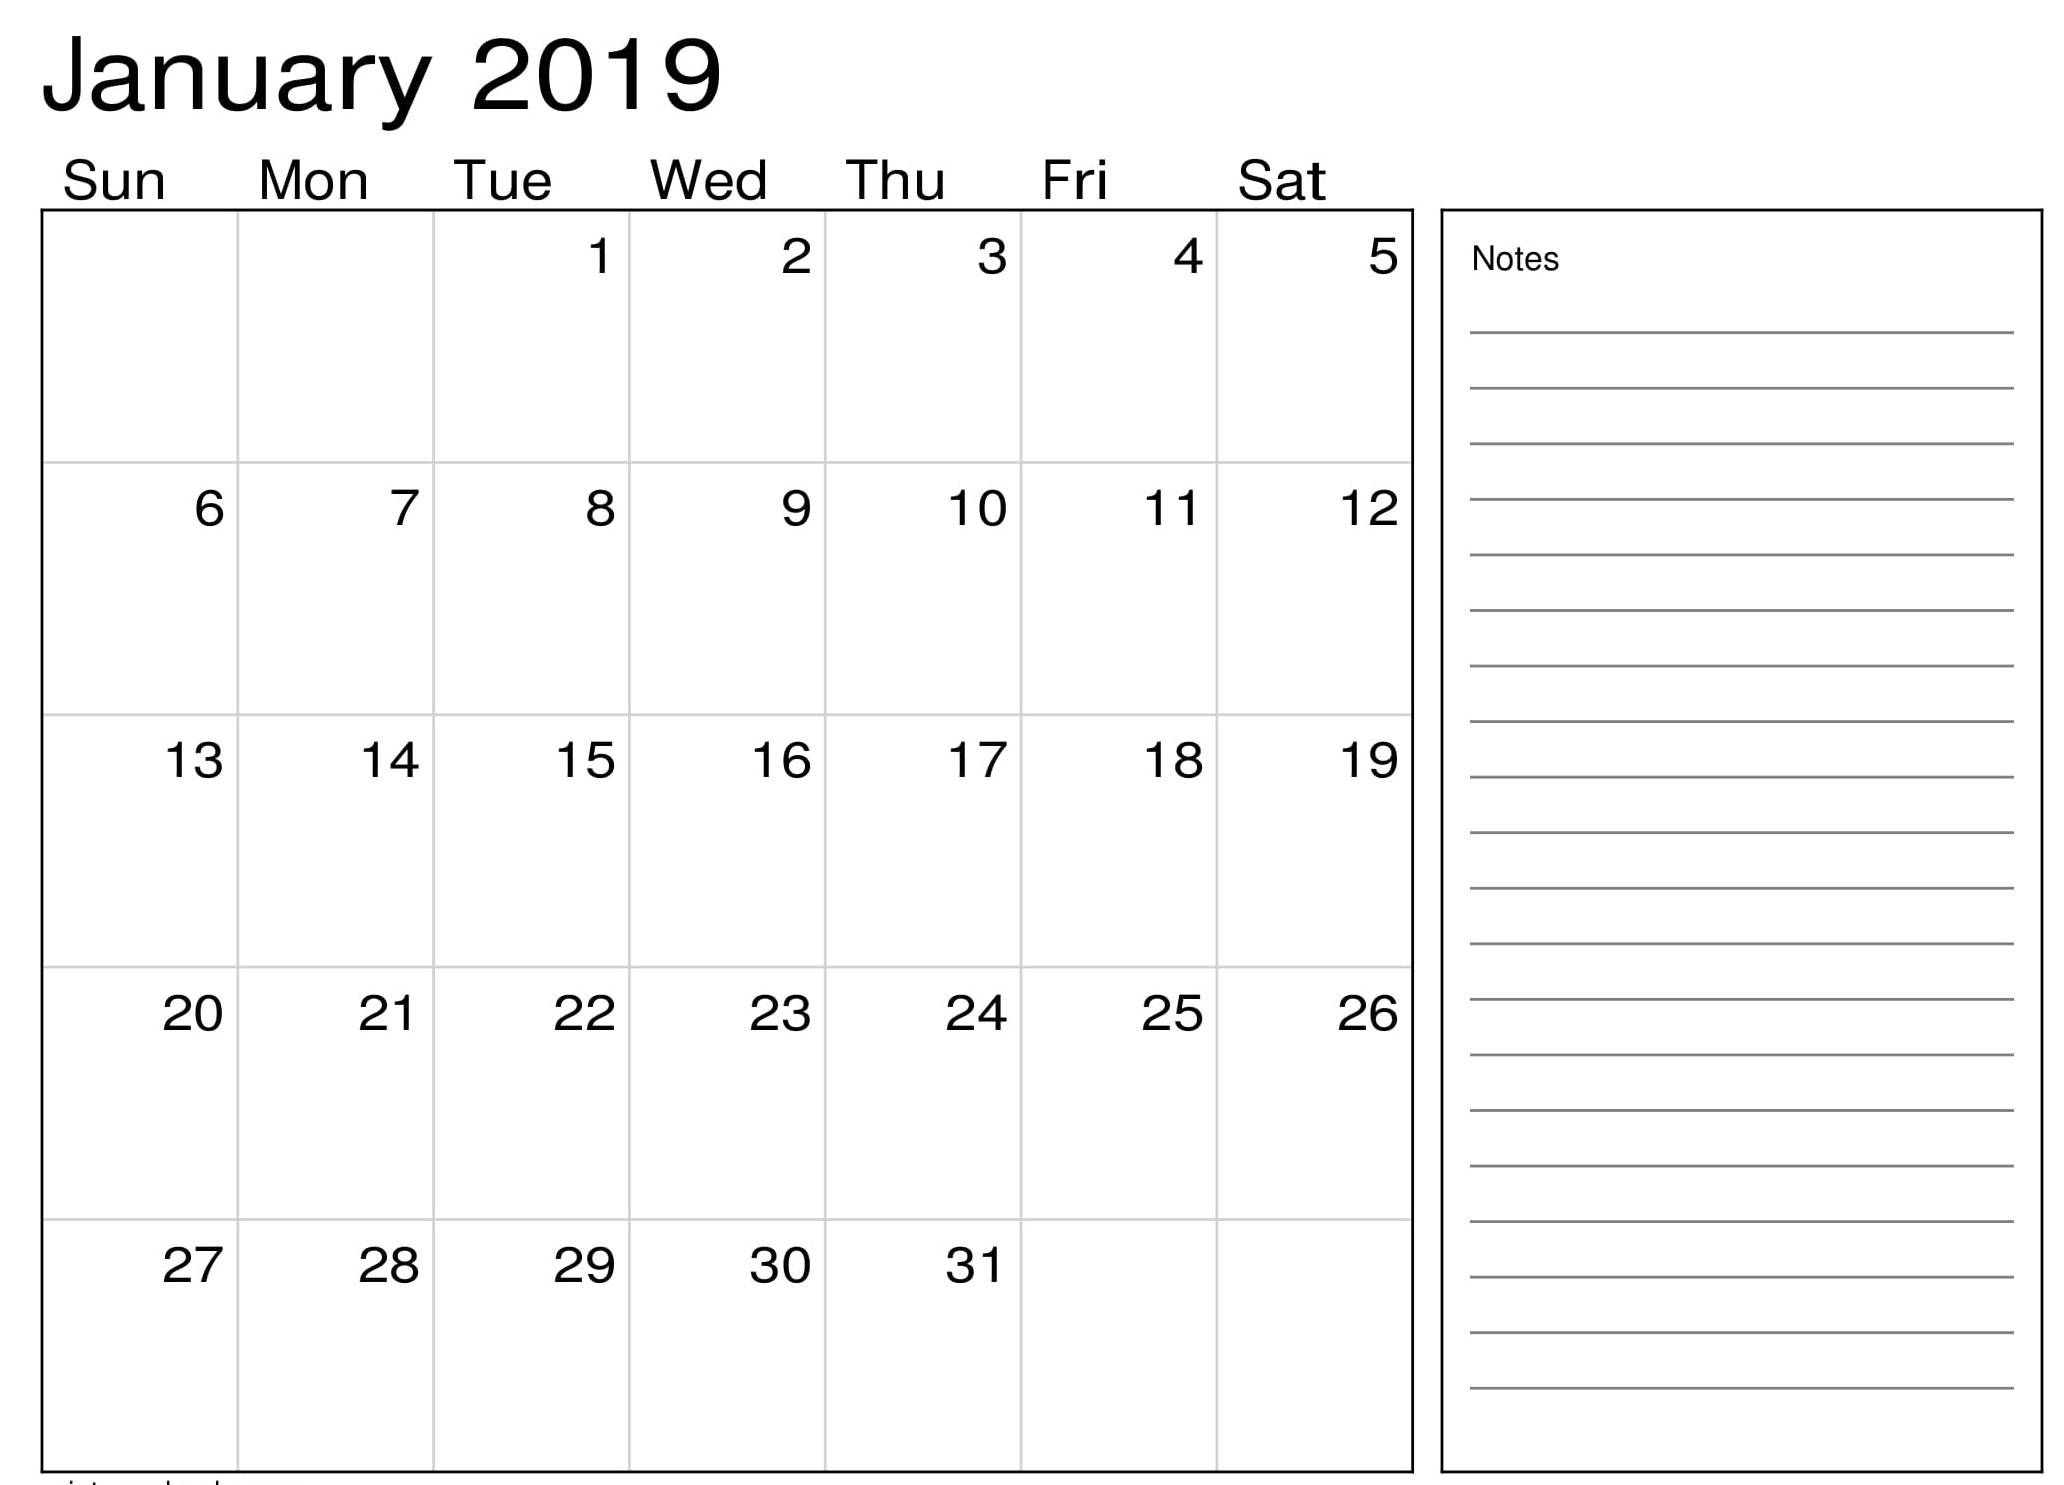 Calendar And Notes - Wpa.wpart.co